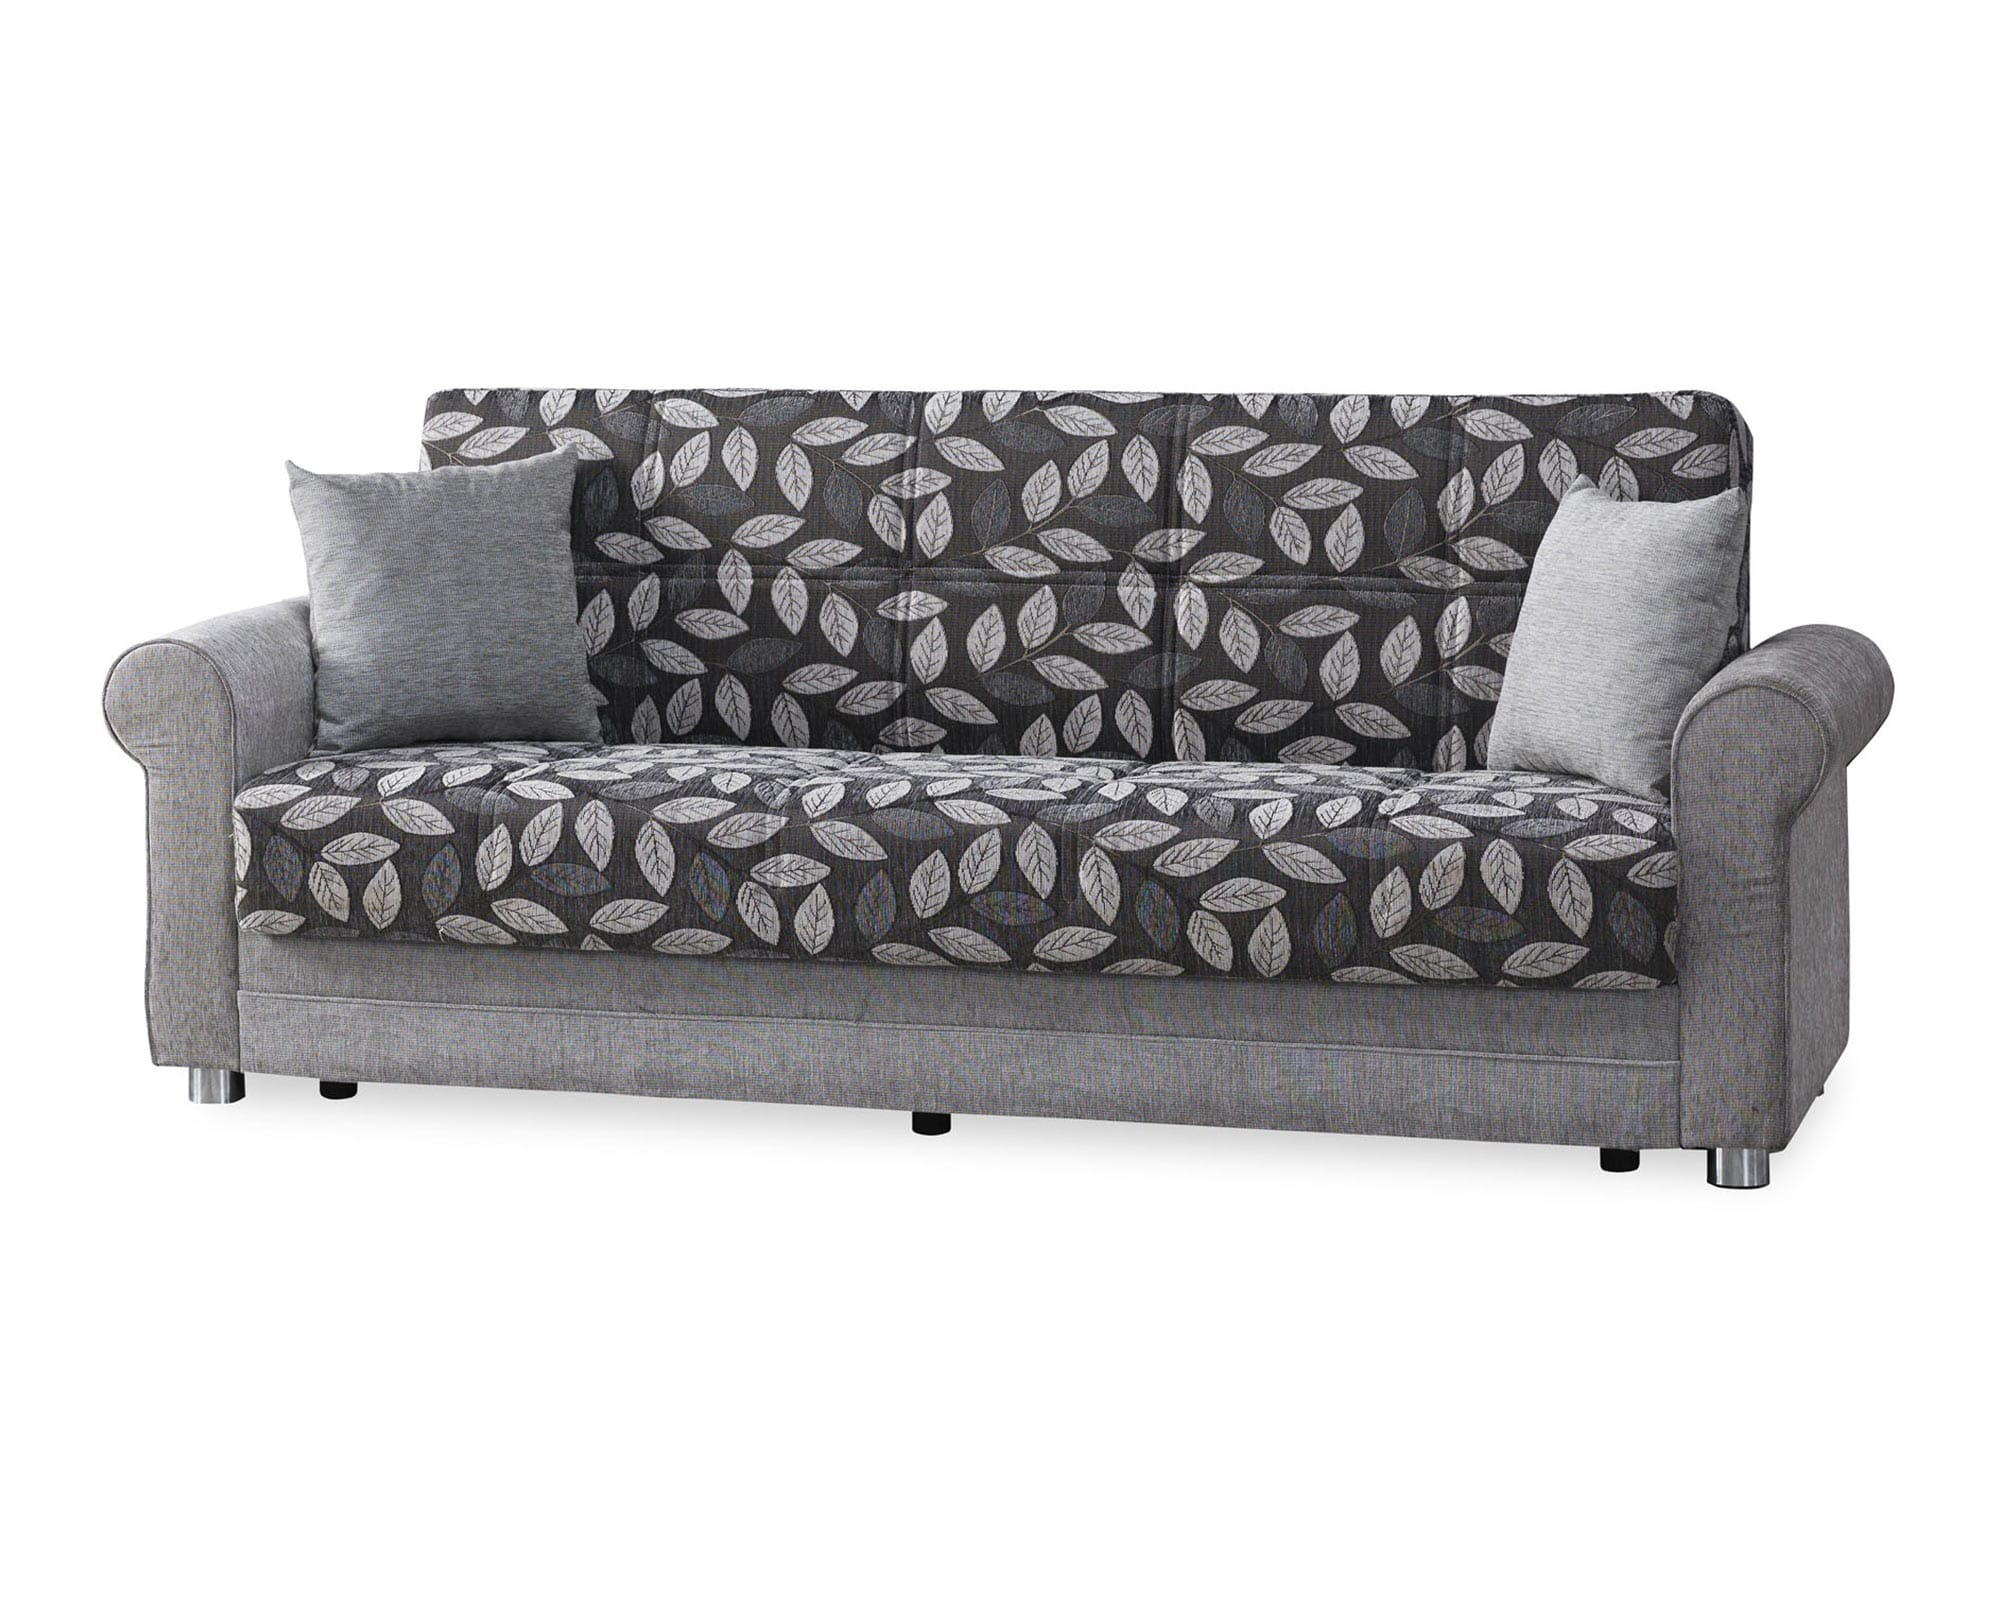 Rio Beige Convertible Sofa By Casamode